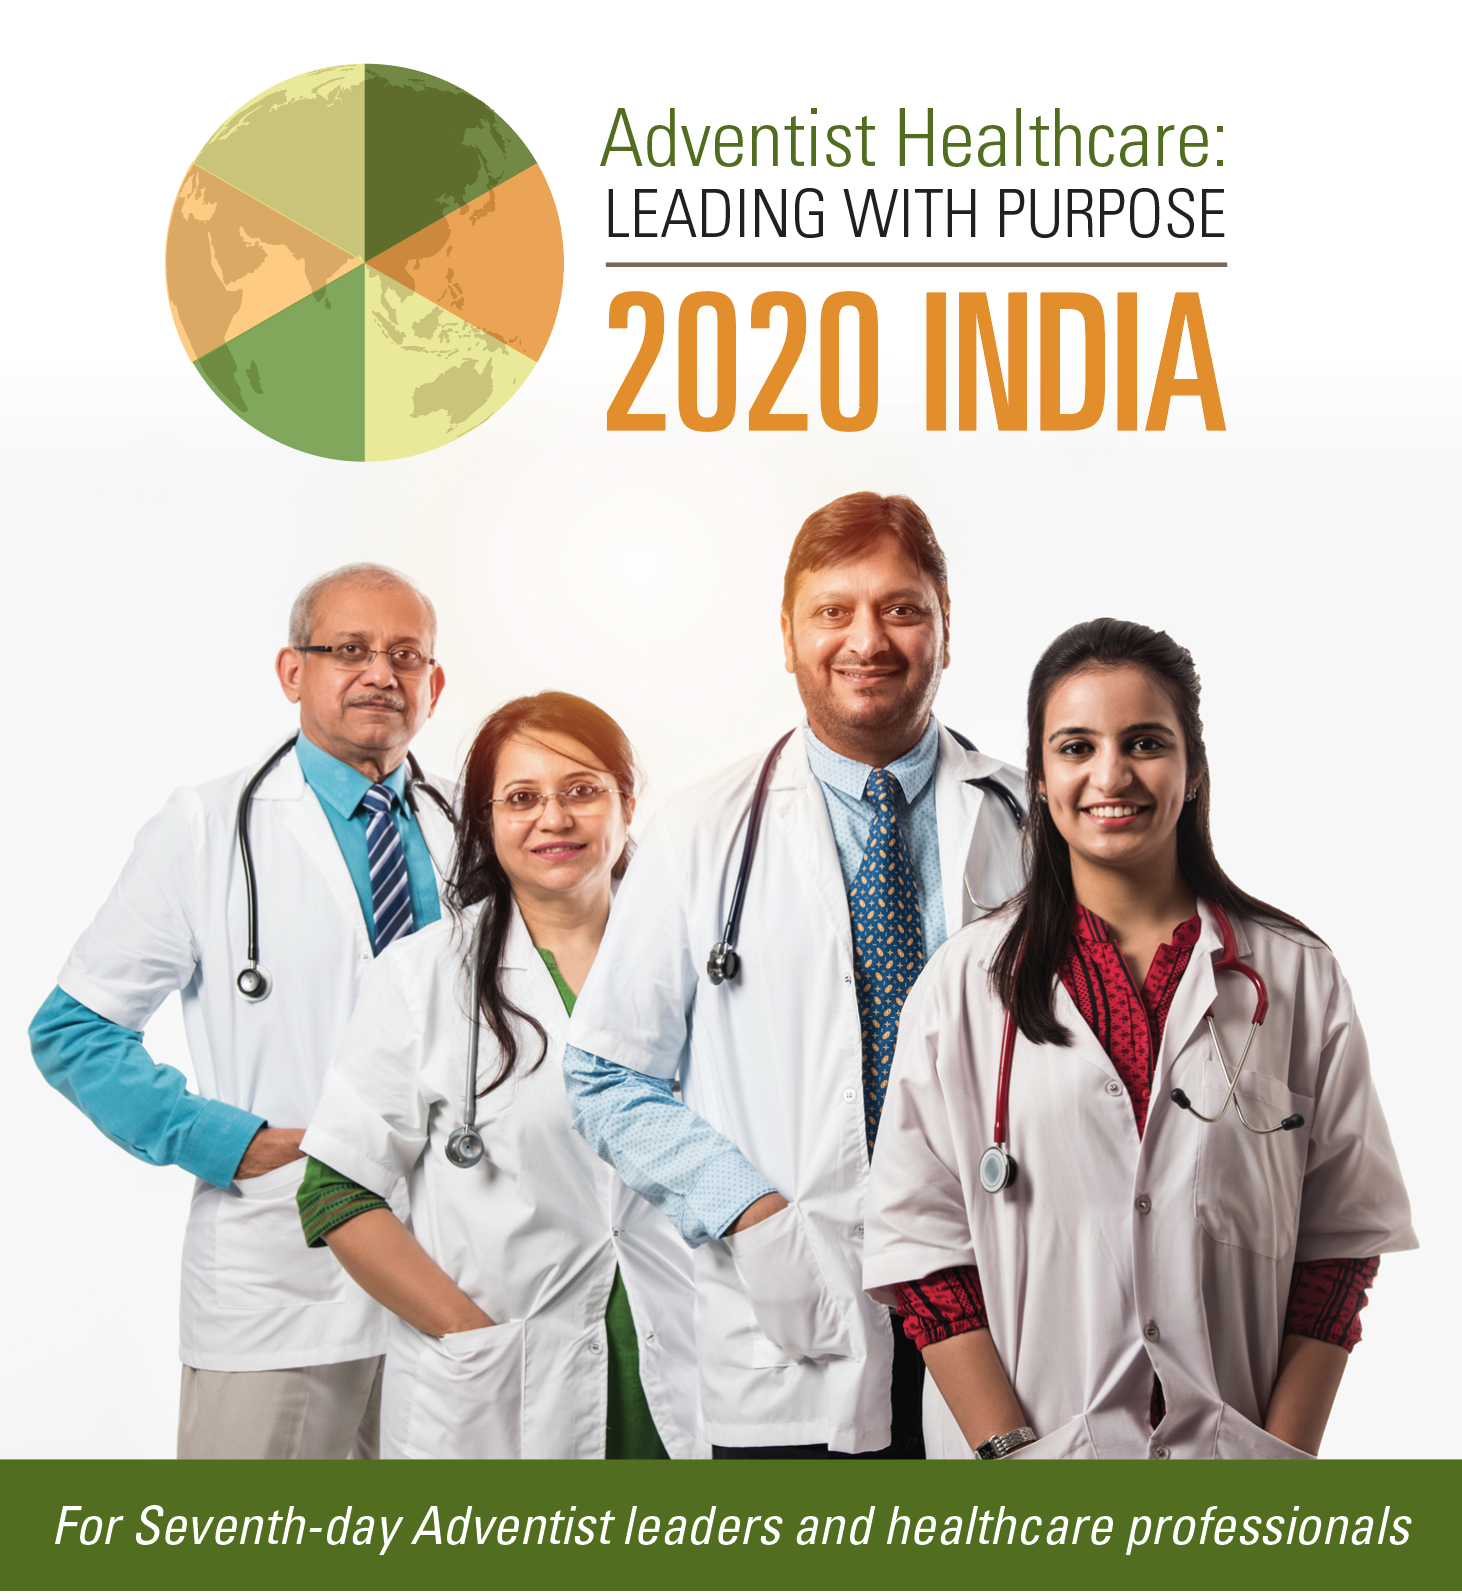 Adventist Healthcare Leading With Purpose India 2020 January 22